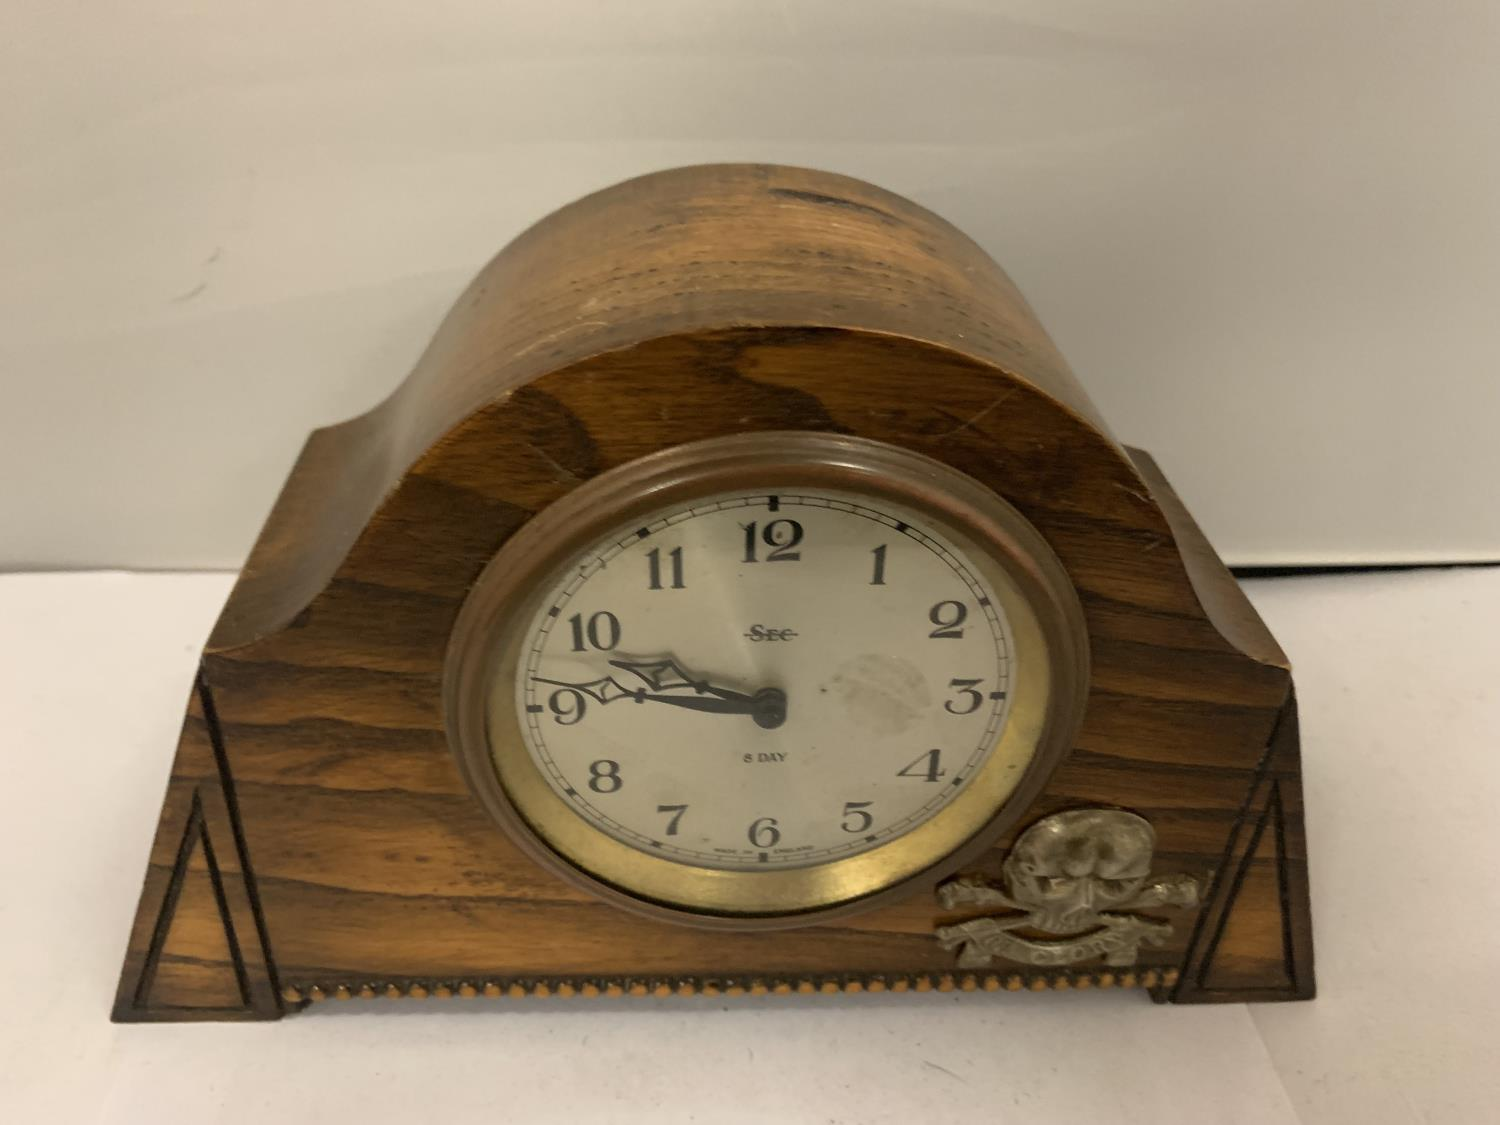 AN EIGHT DAY MANTLE CLOCK DECORATED WITH A DEATH OR GLORY MILTARY BADGE